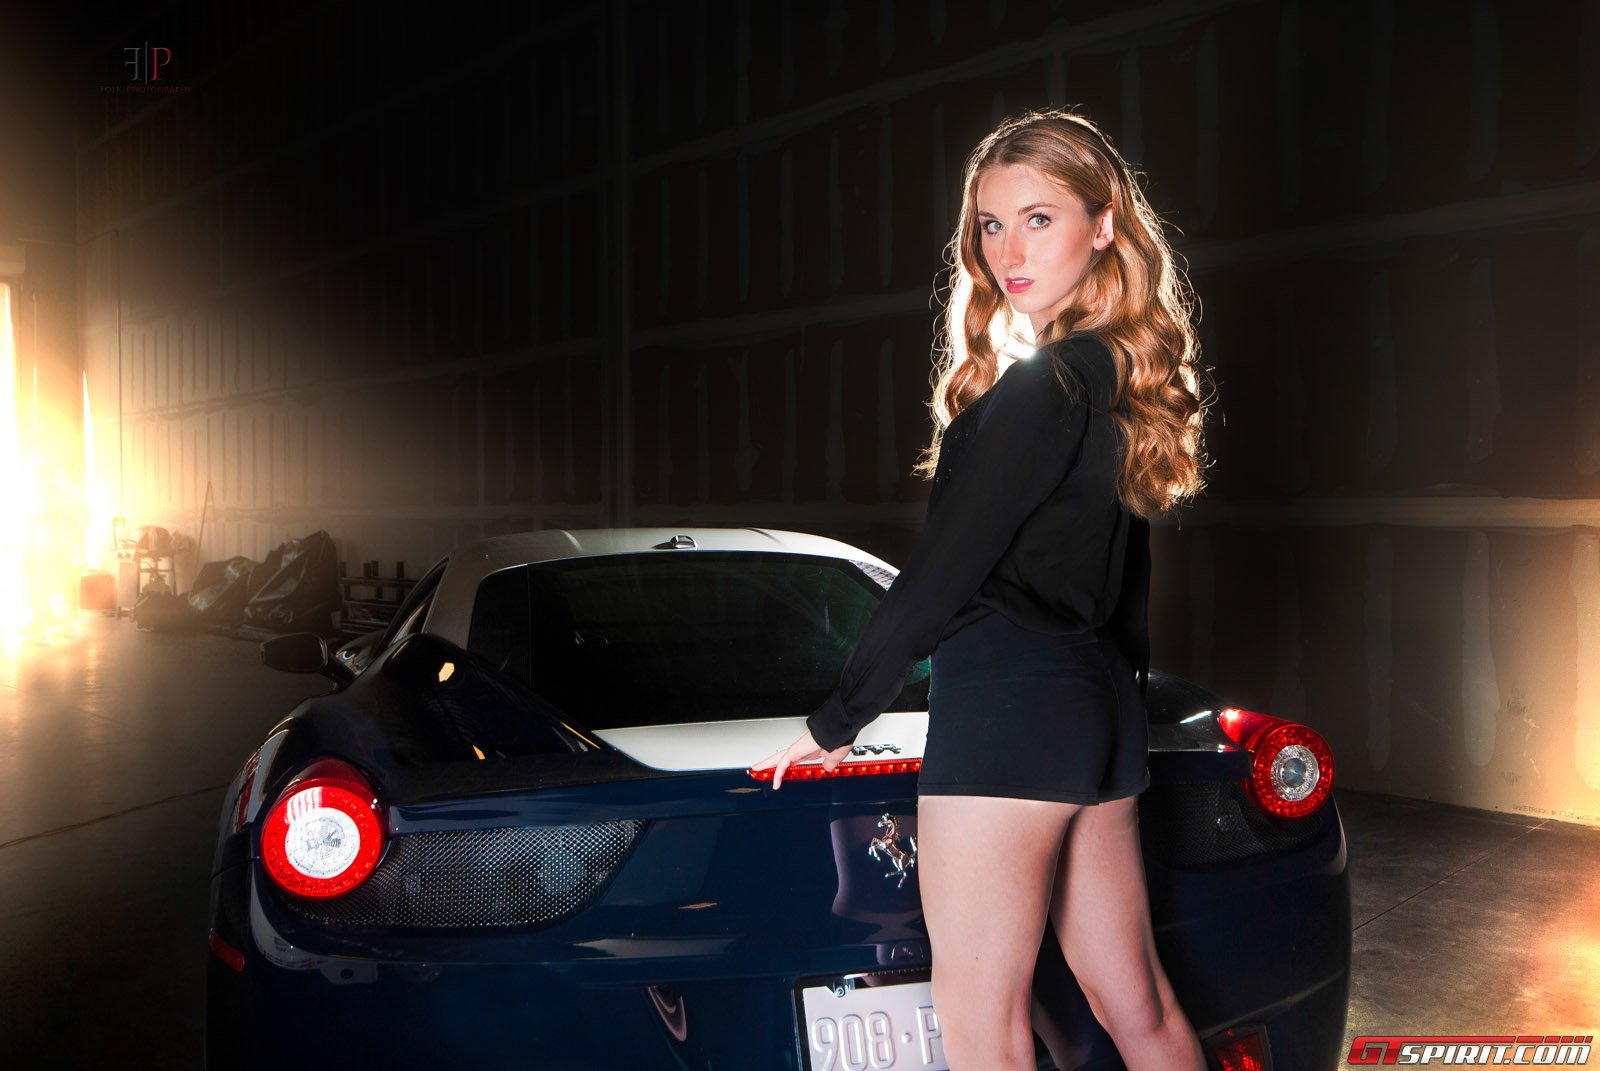 A Little Over Week Later The Images Were Edited And Distributed To Owner Of Ferrari Models Anyone Else Who Helped Make This Shoot